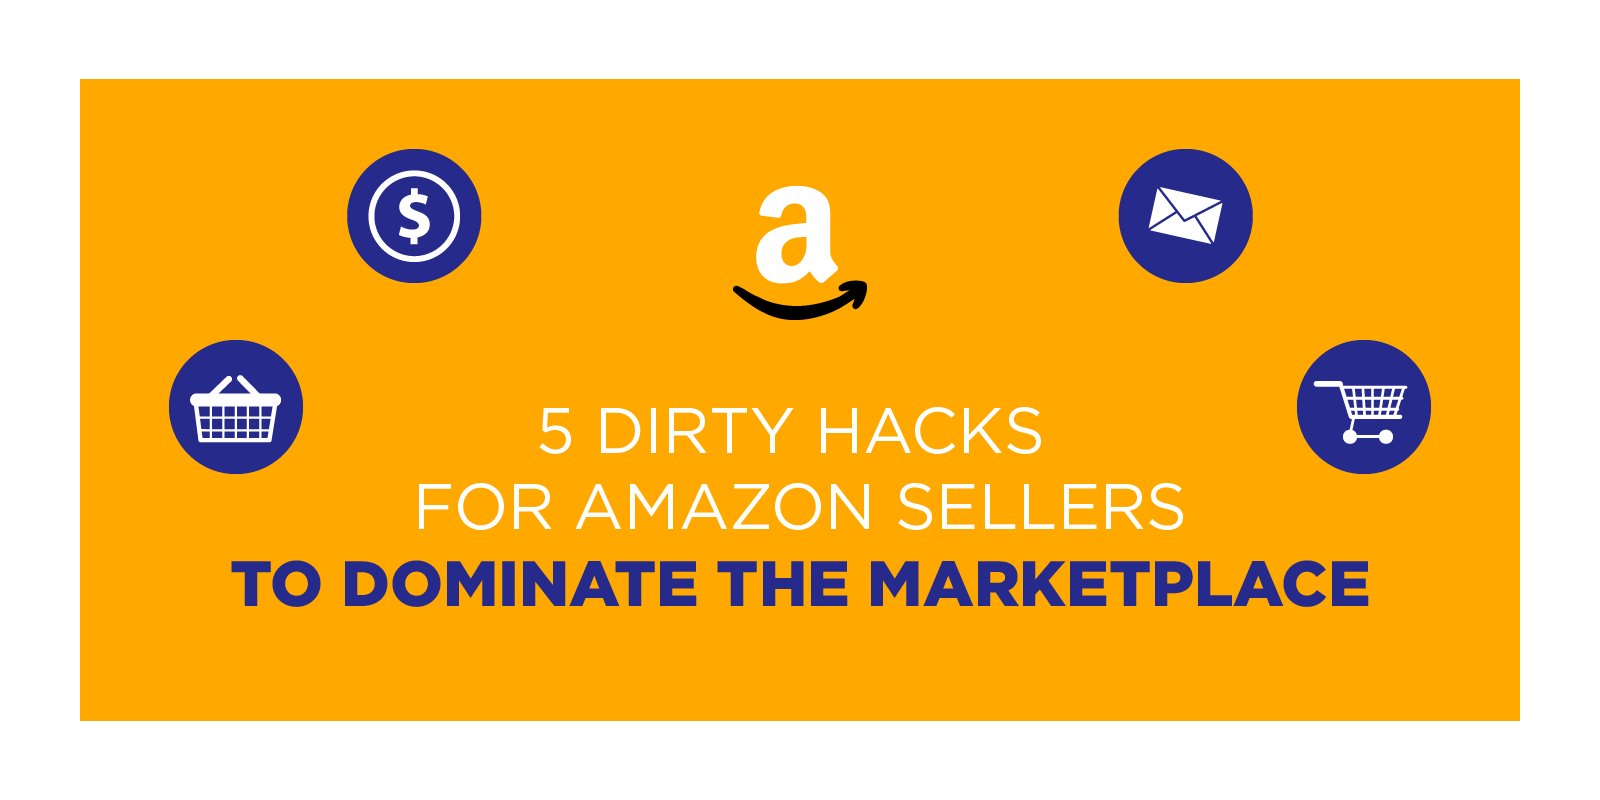 Amazon buy now button png. Dirty hacks for